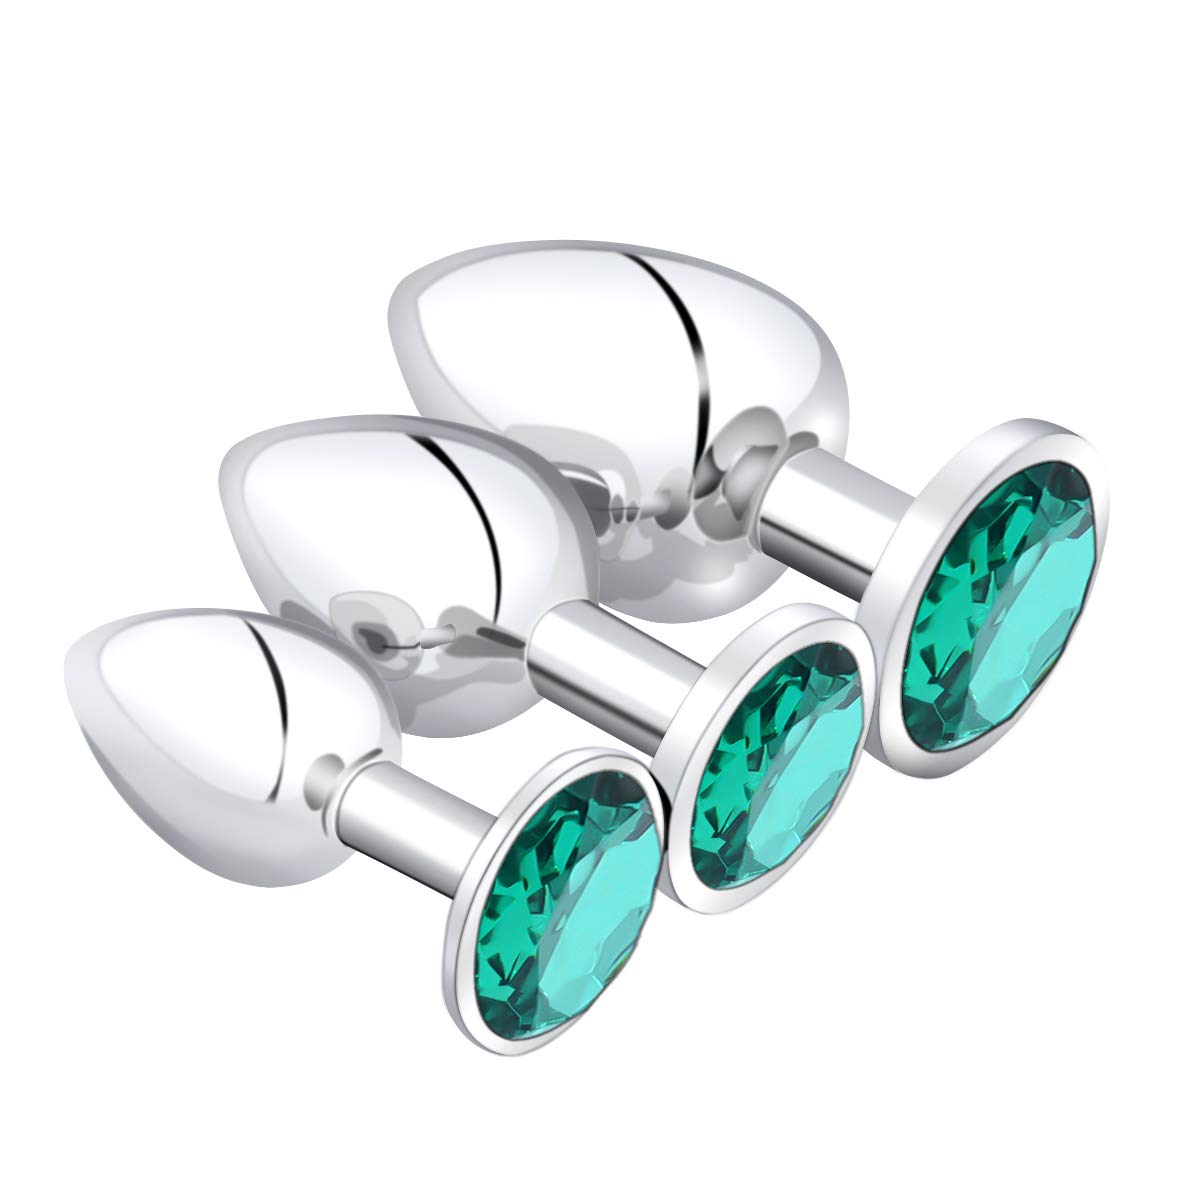 YiFeng 3 Pieces Jeweled Butt Plug, Stainless Steel Anal Plugs Kit Sex Stimulation Toy for Beginners Couples (Green)